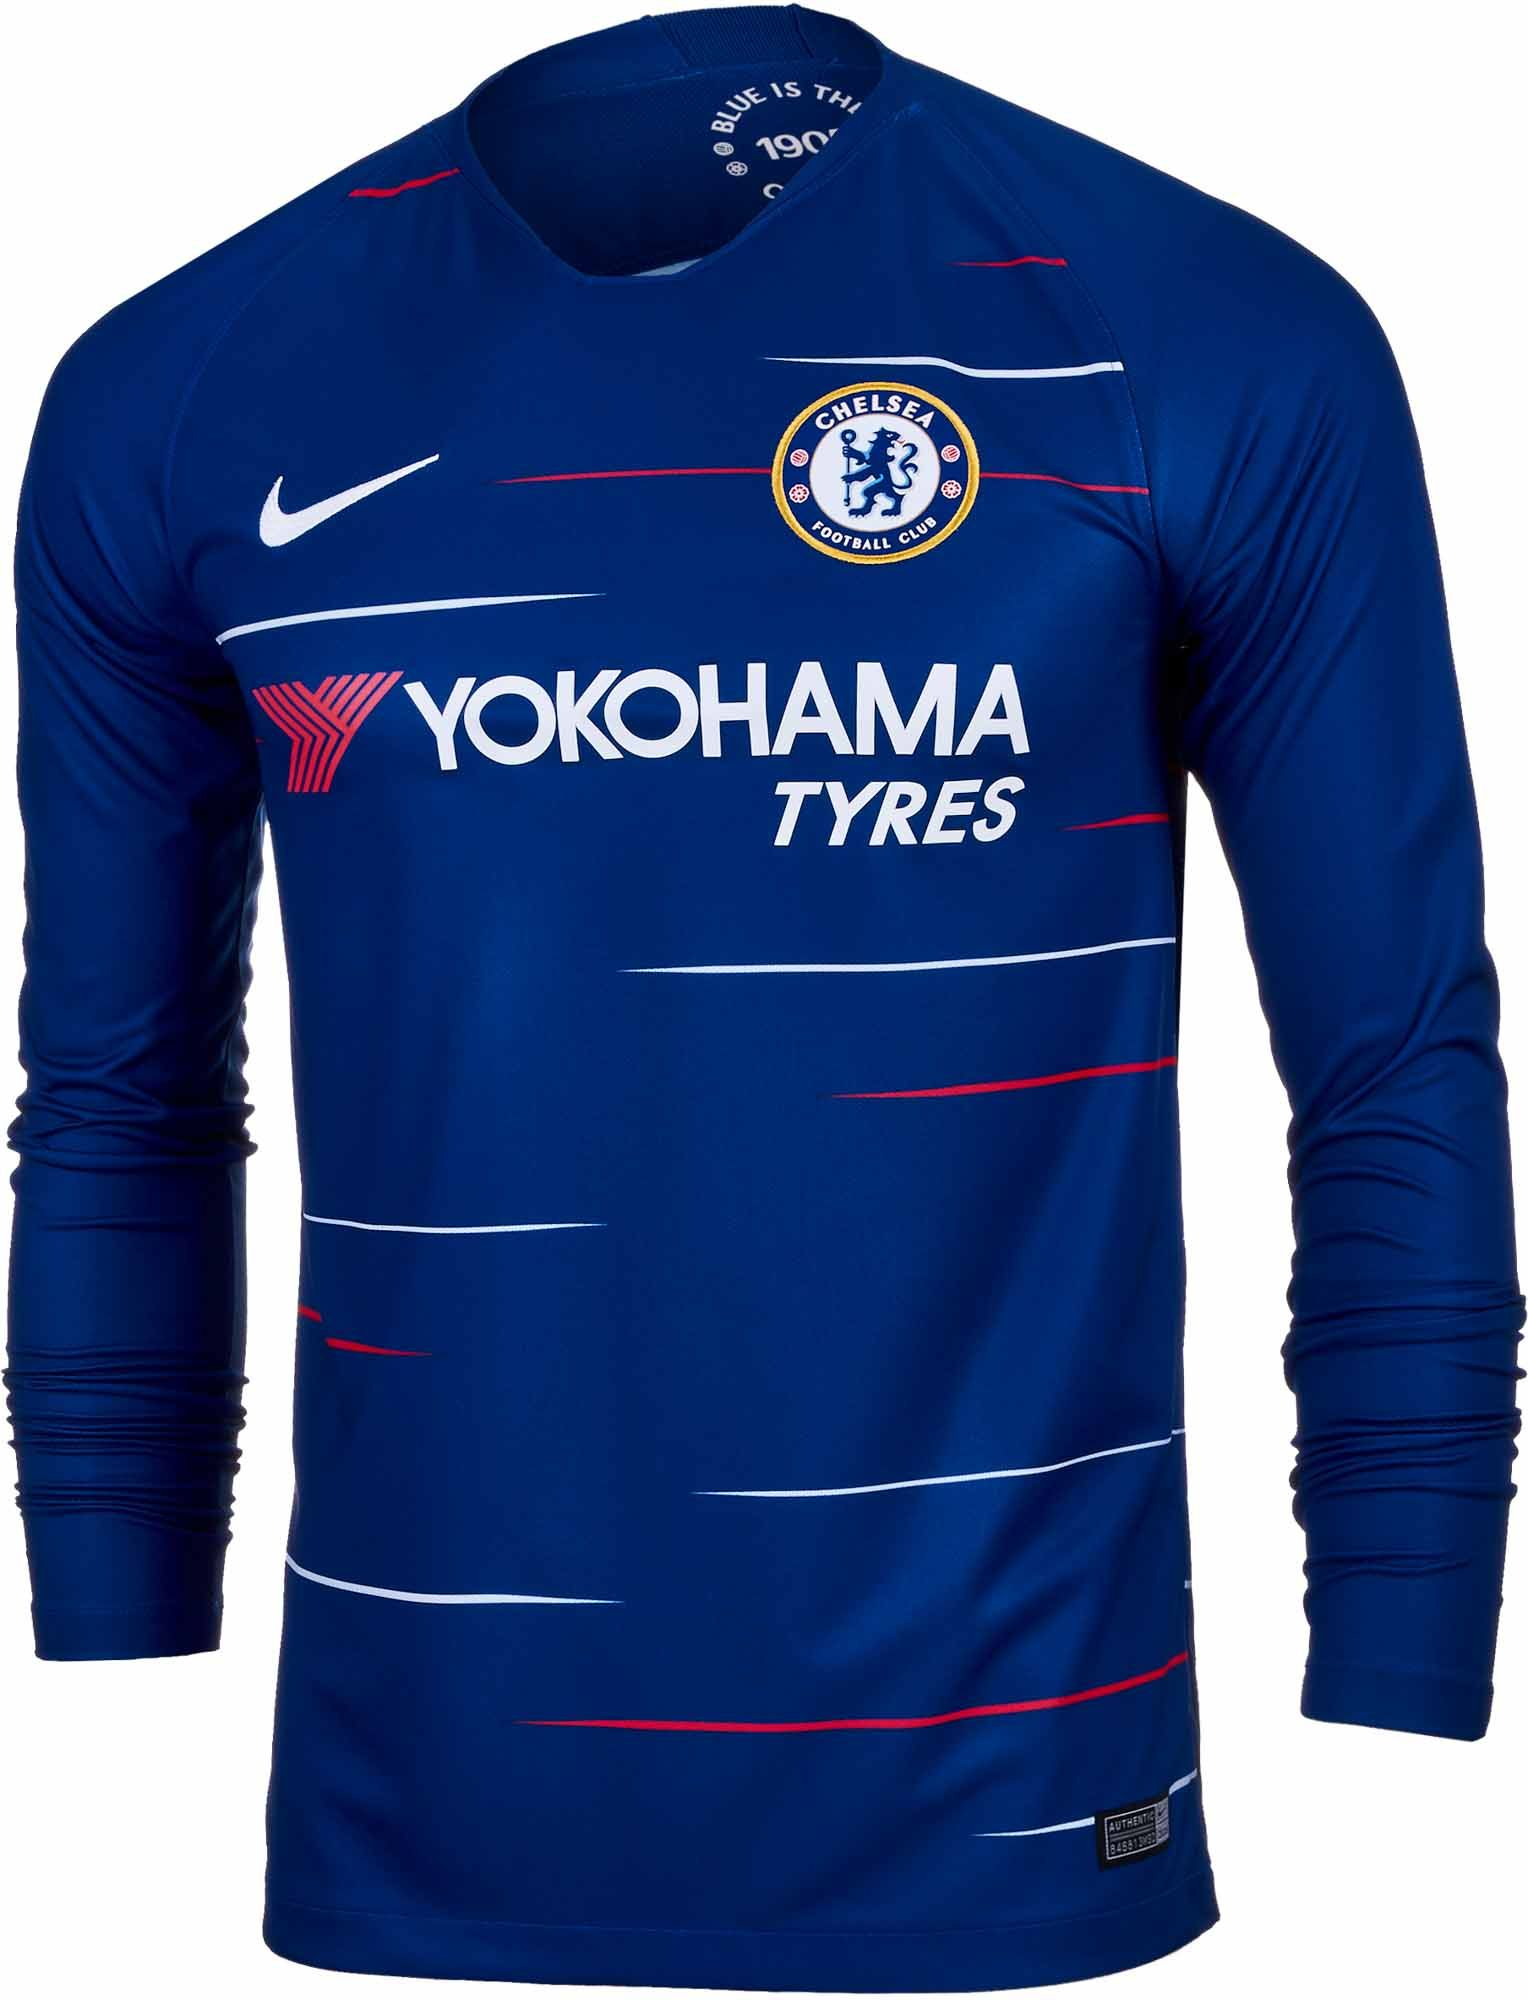 5cf327733 2018 19 adidas Chelsea FC L S Home Jersey. Hot at soccerpro.com right now.  Get yours today.